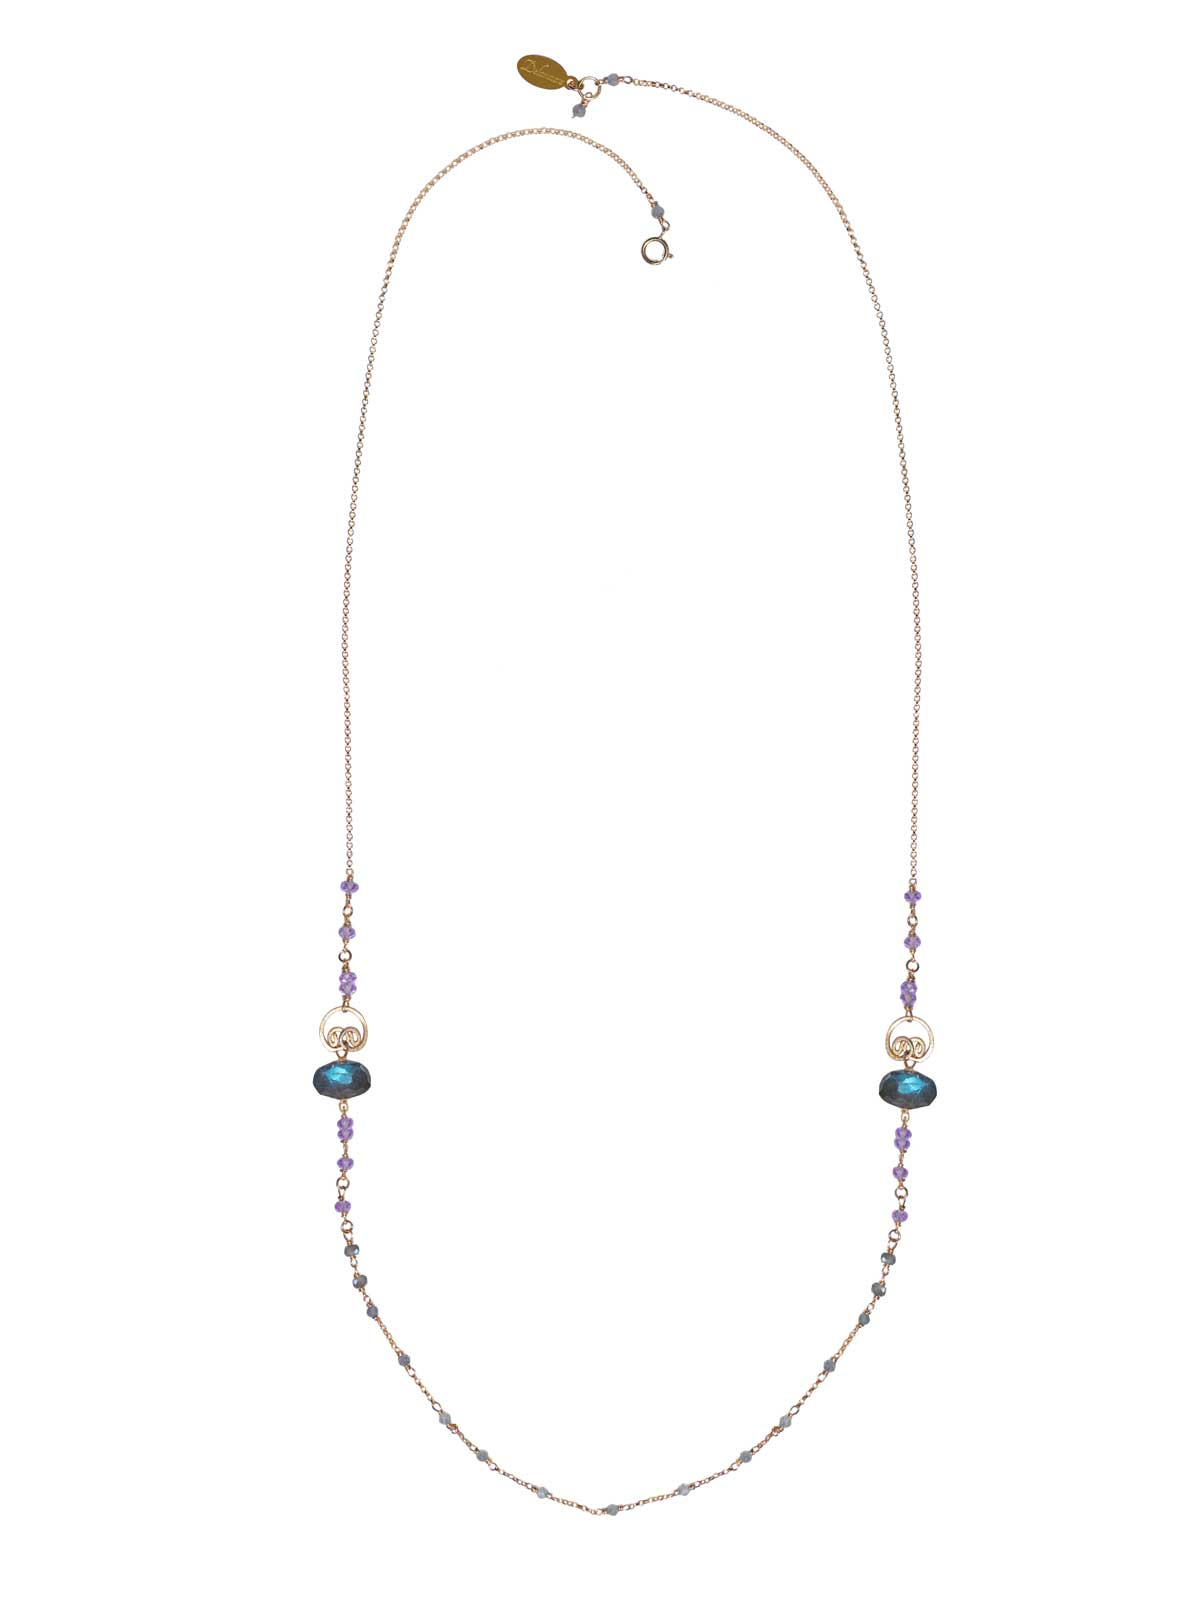 Buddha long Necklace gold Labradorite Amethyst